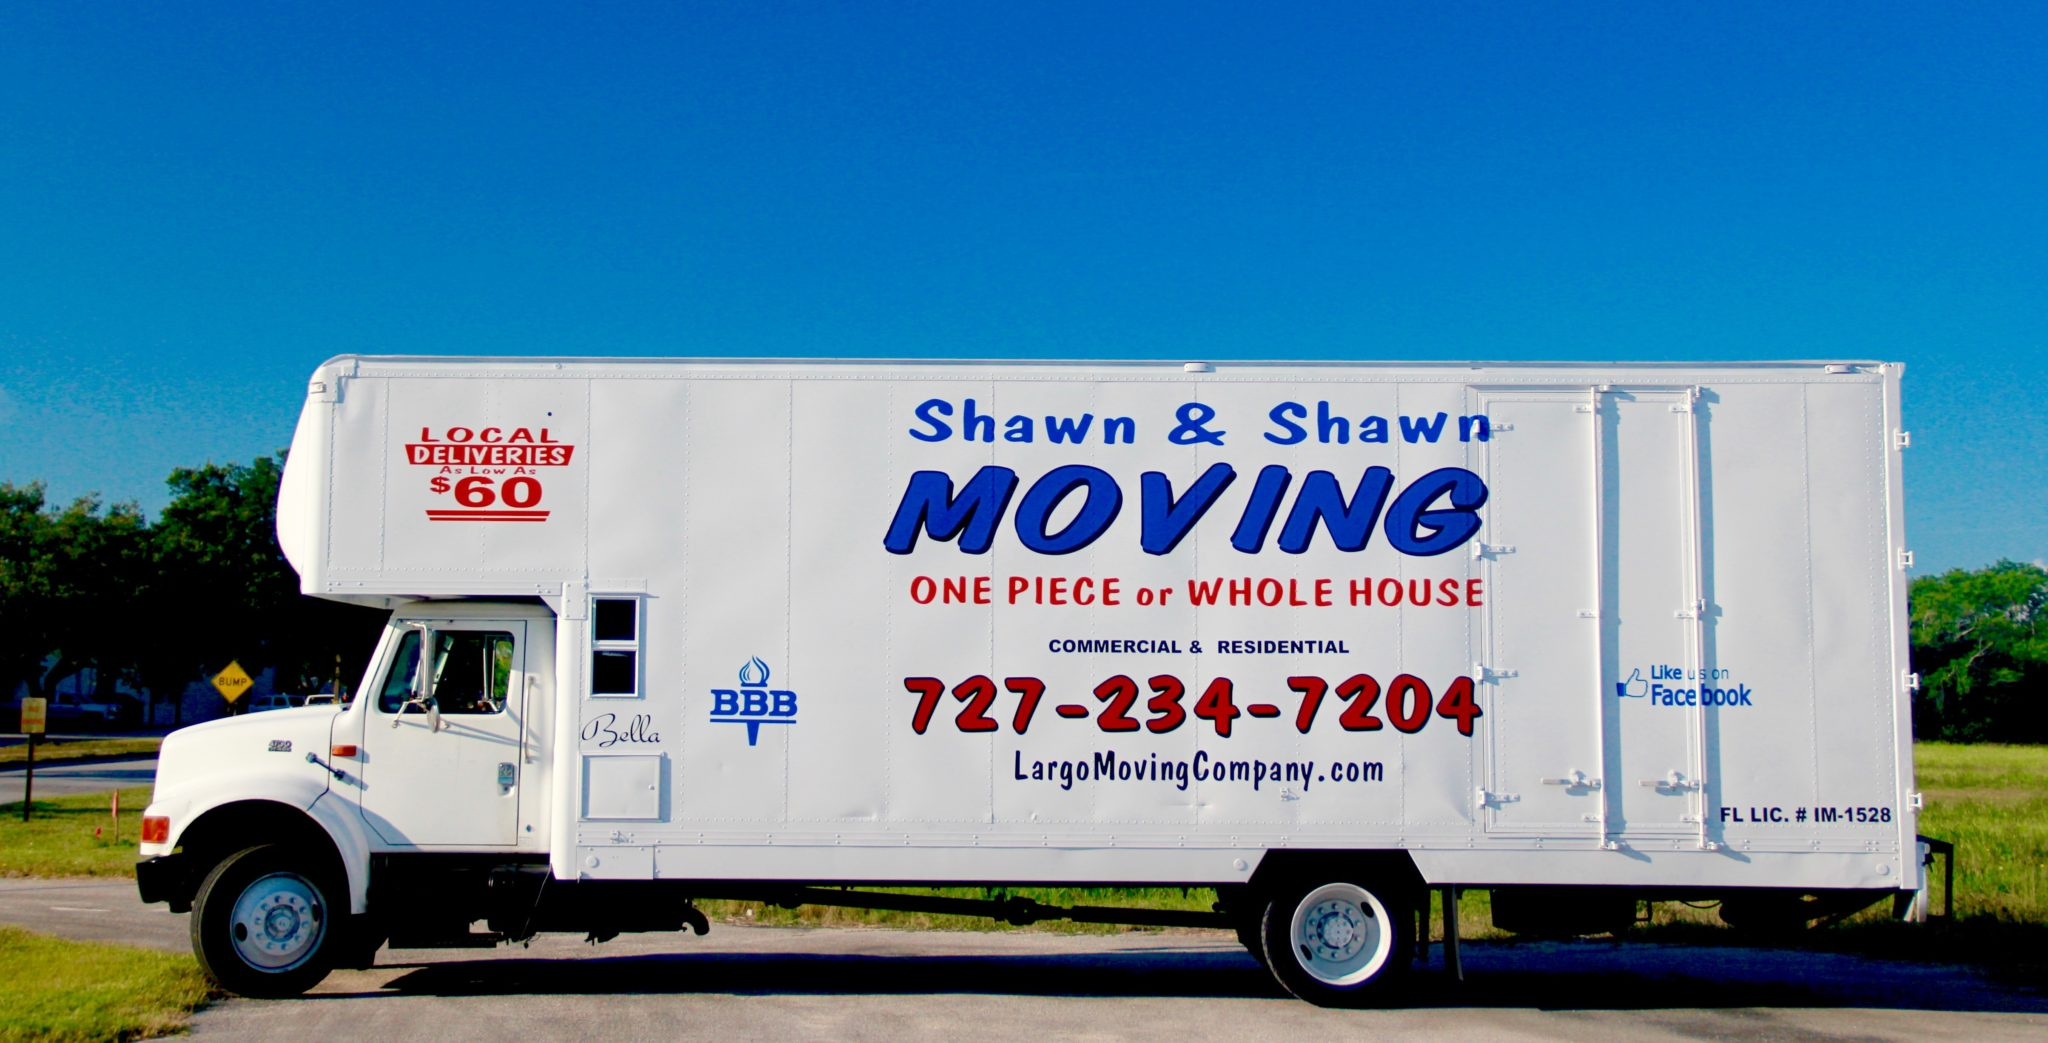 Local Delivers in Pinellas County, Florida Starting at $60 | Shawn & Shawn Moving Company | Delivery Services